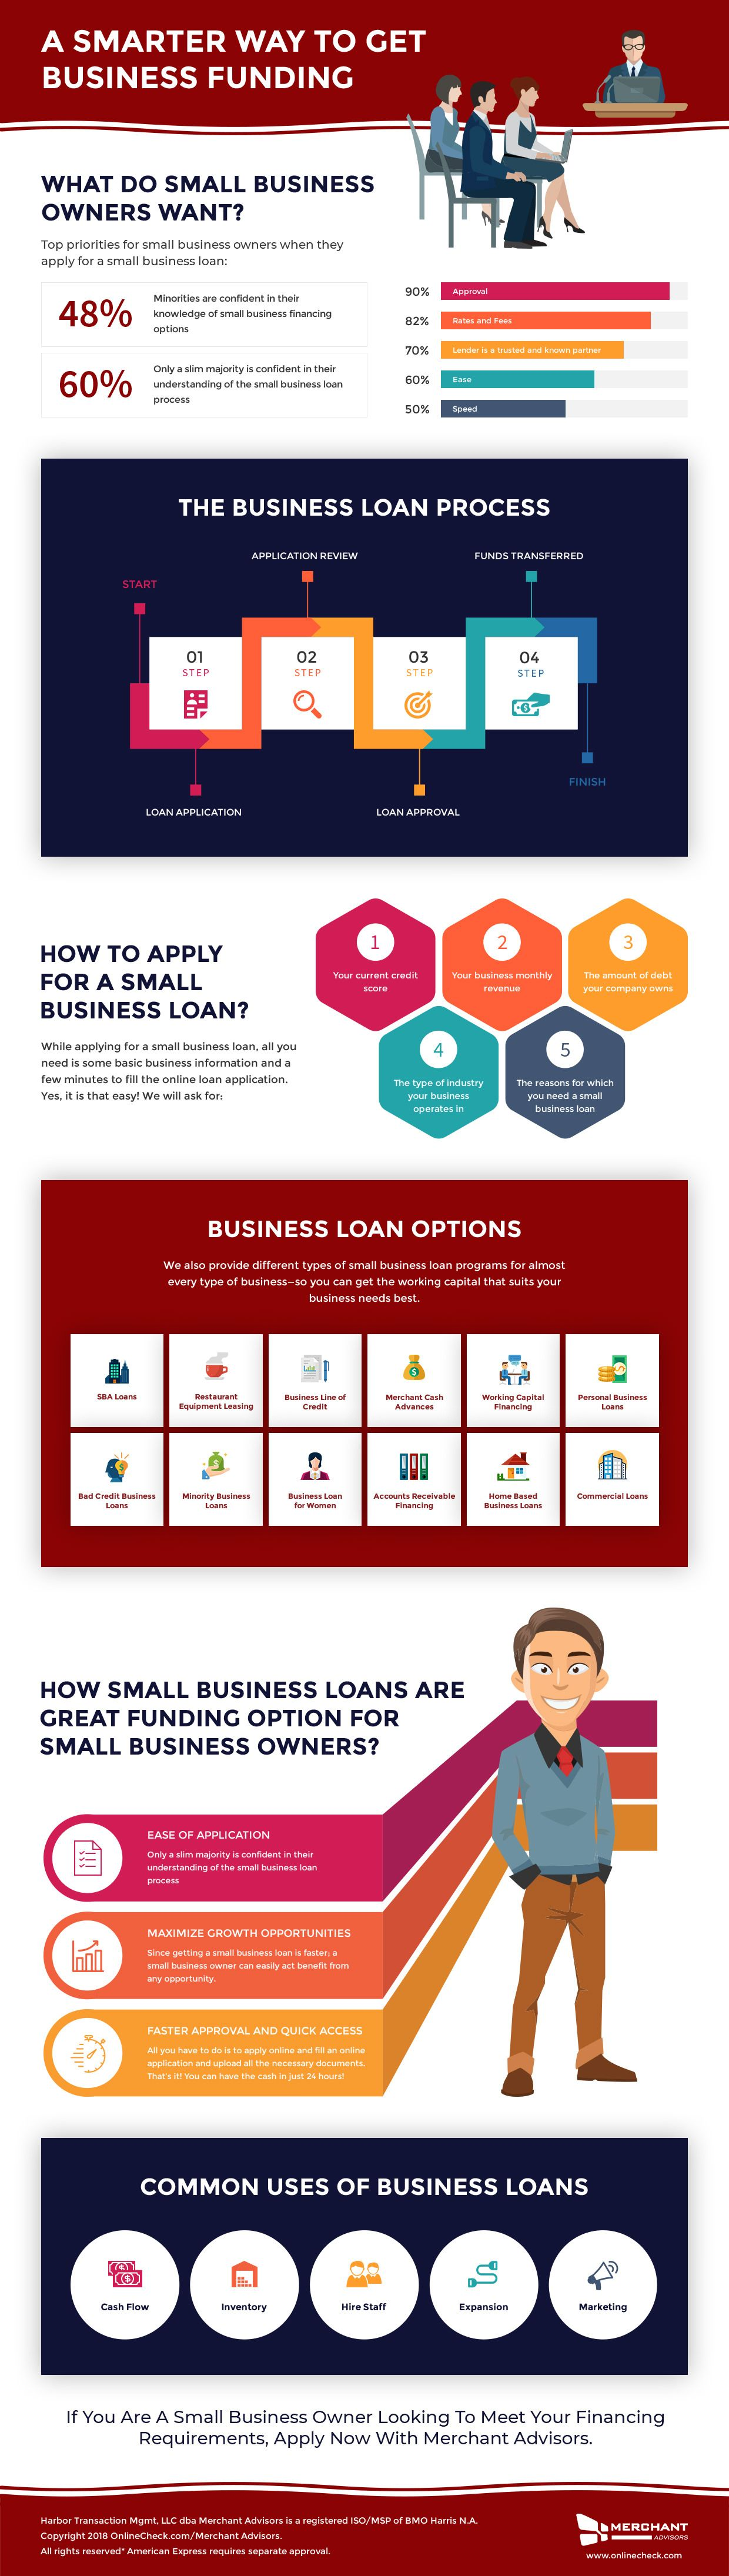 A smarter way to get business funding business loans